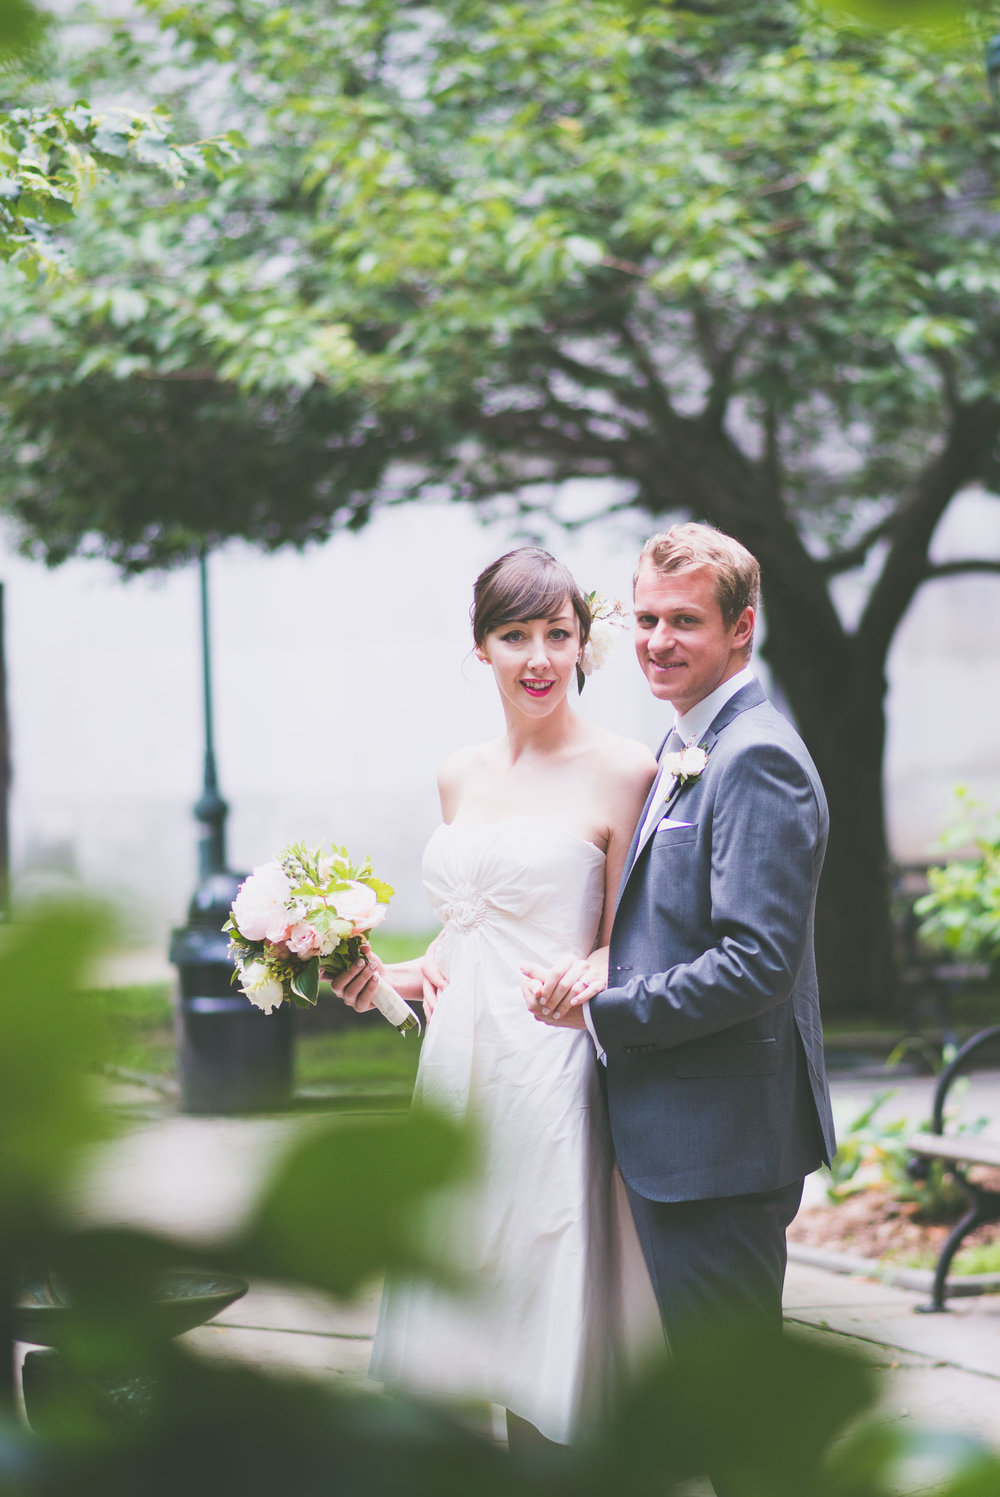 Through trees - Weddings - Photo credit Nicola Bailey.jpg